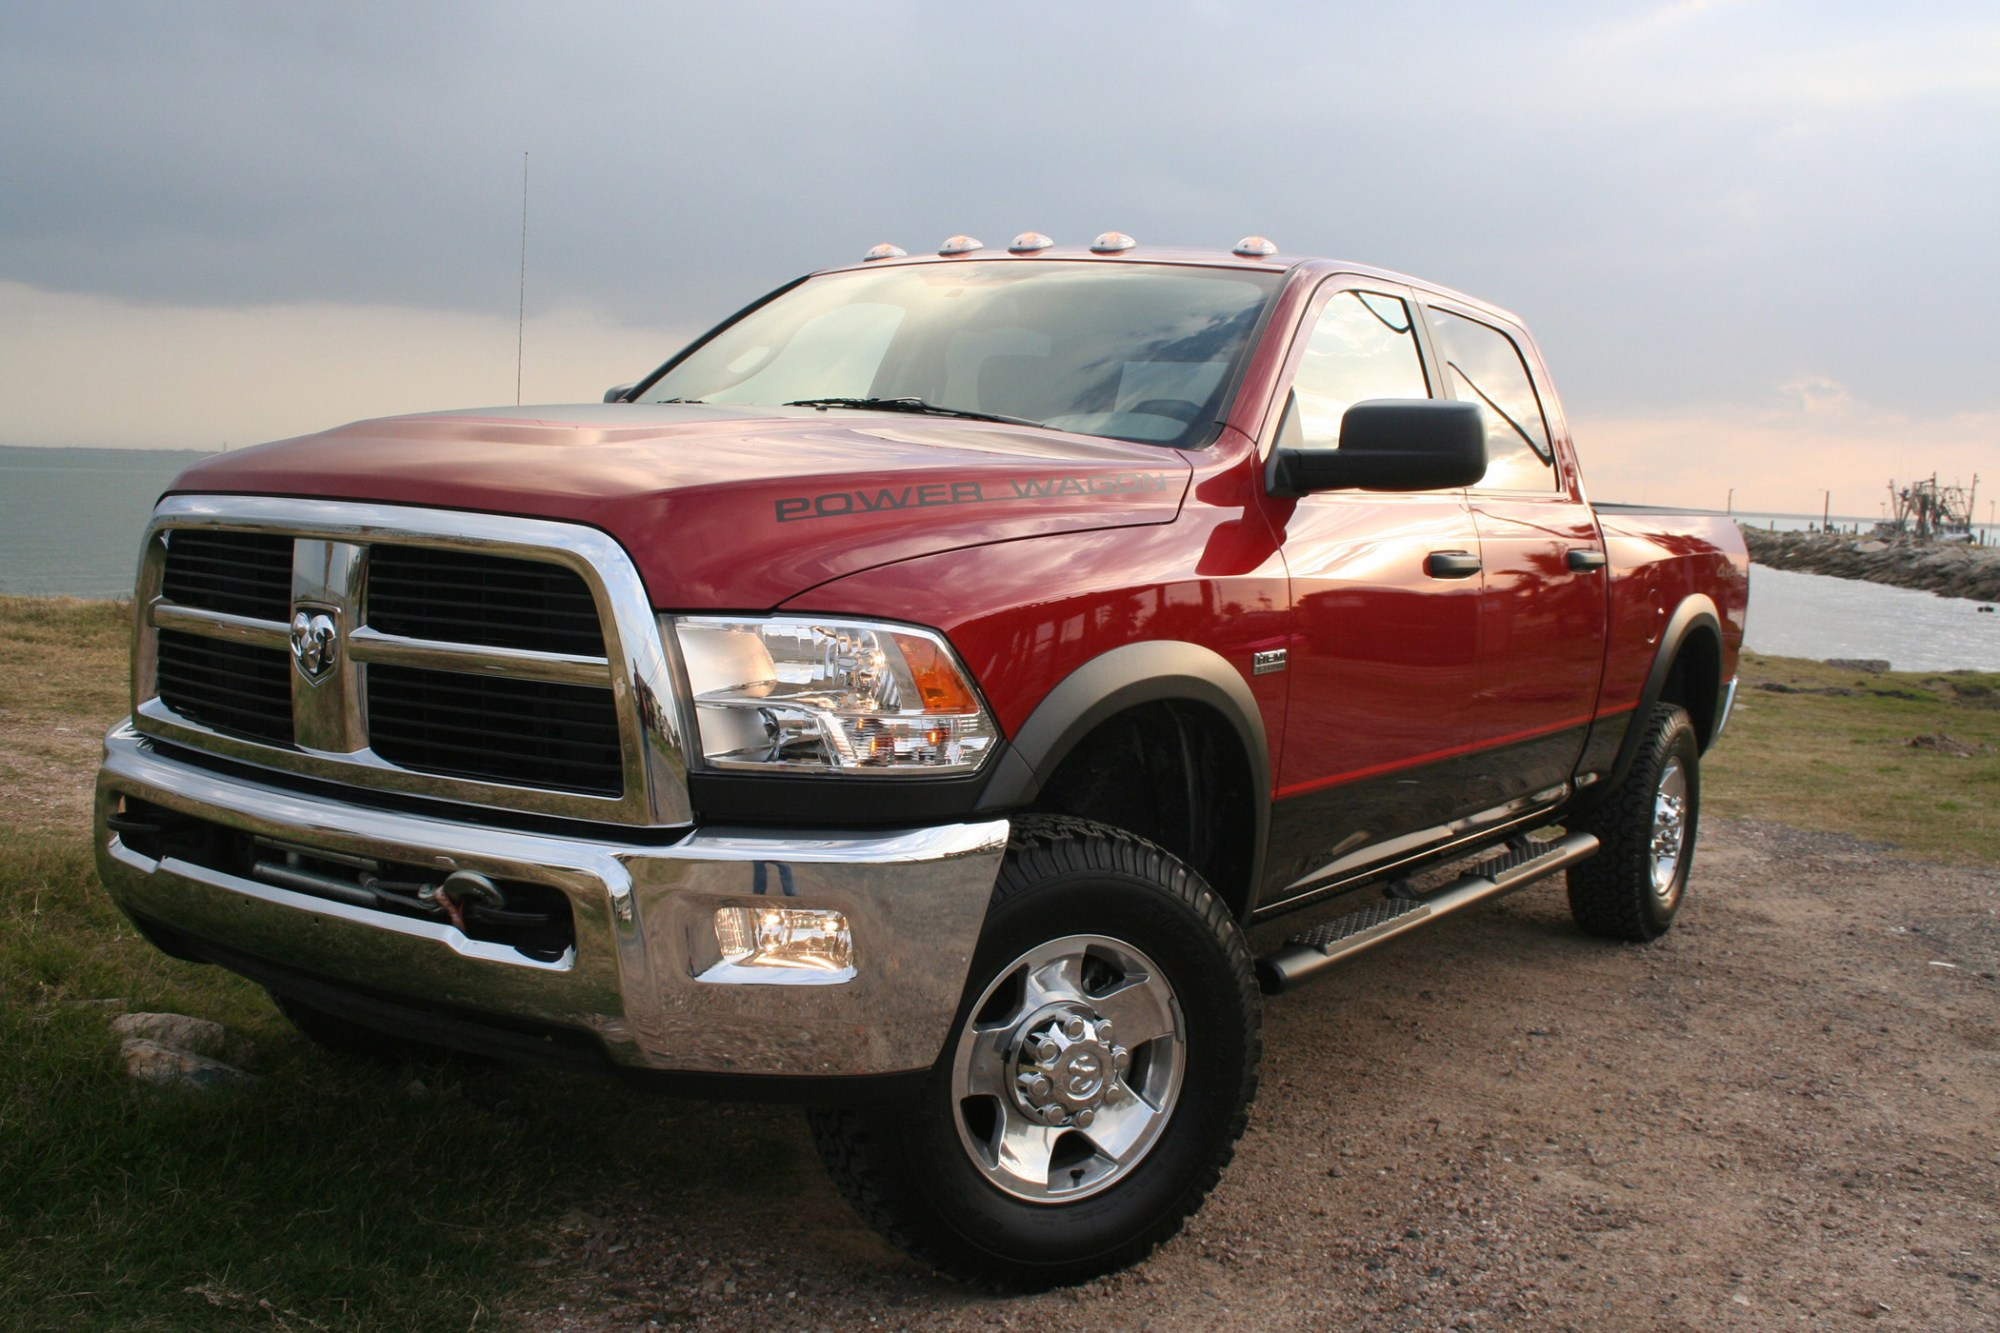 hight resolution of the 2011 ram power wagon has the credentials to handle inhospitable terrain and rugged work demands the beefed up version of the ram 2500 slt crew cab 4x4